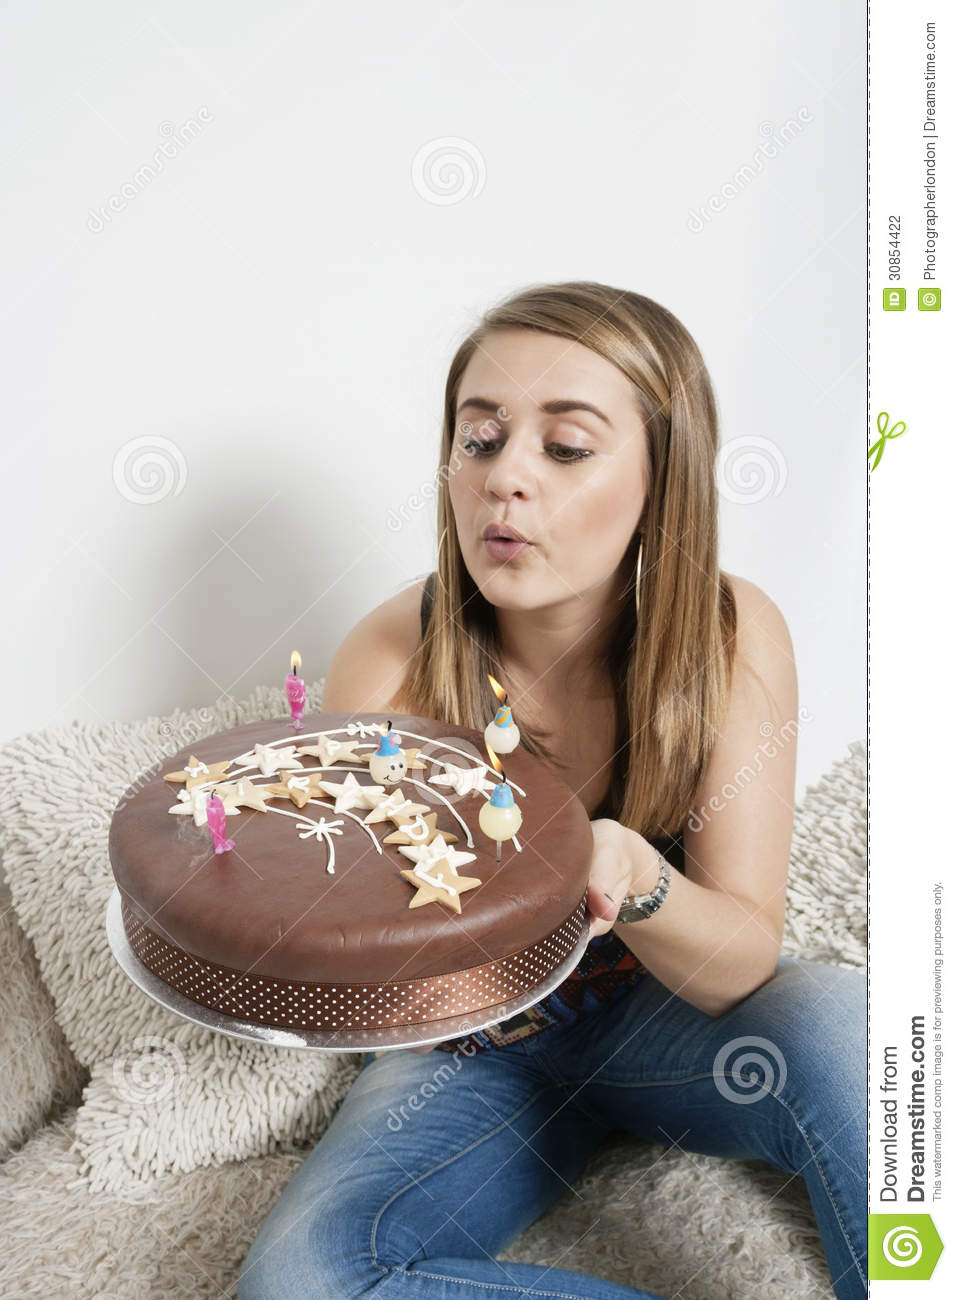 Young Woman Blowing Out Candles On Birthday Cake Stock